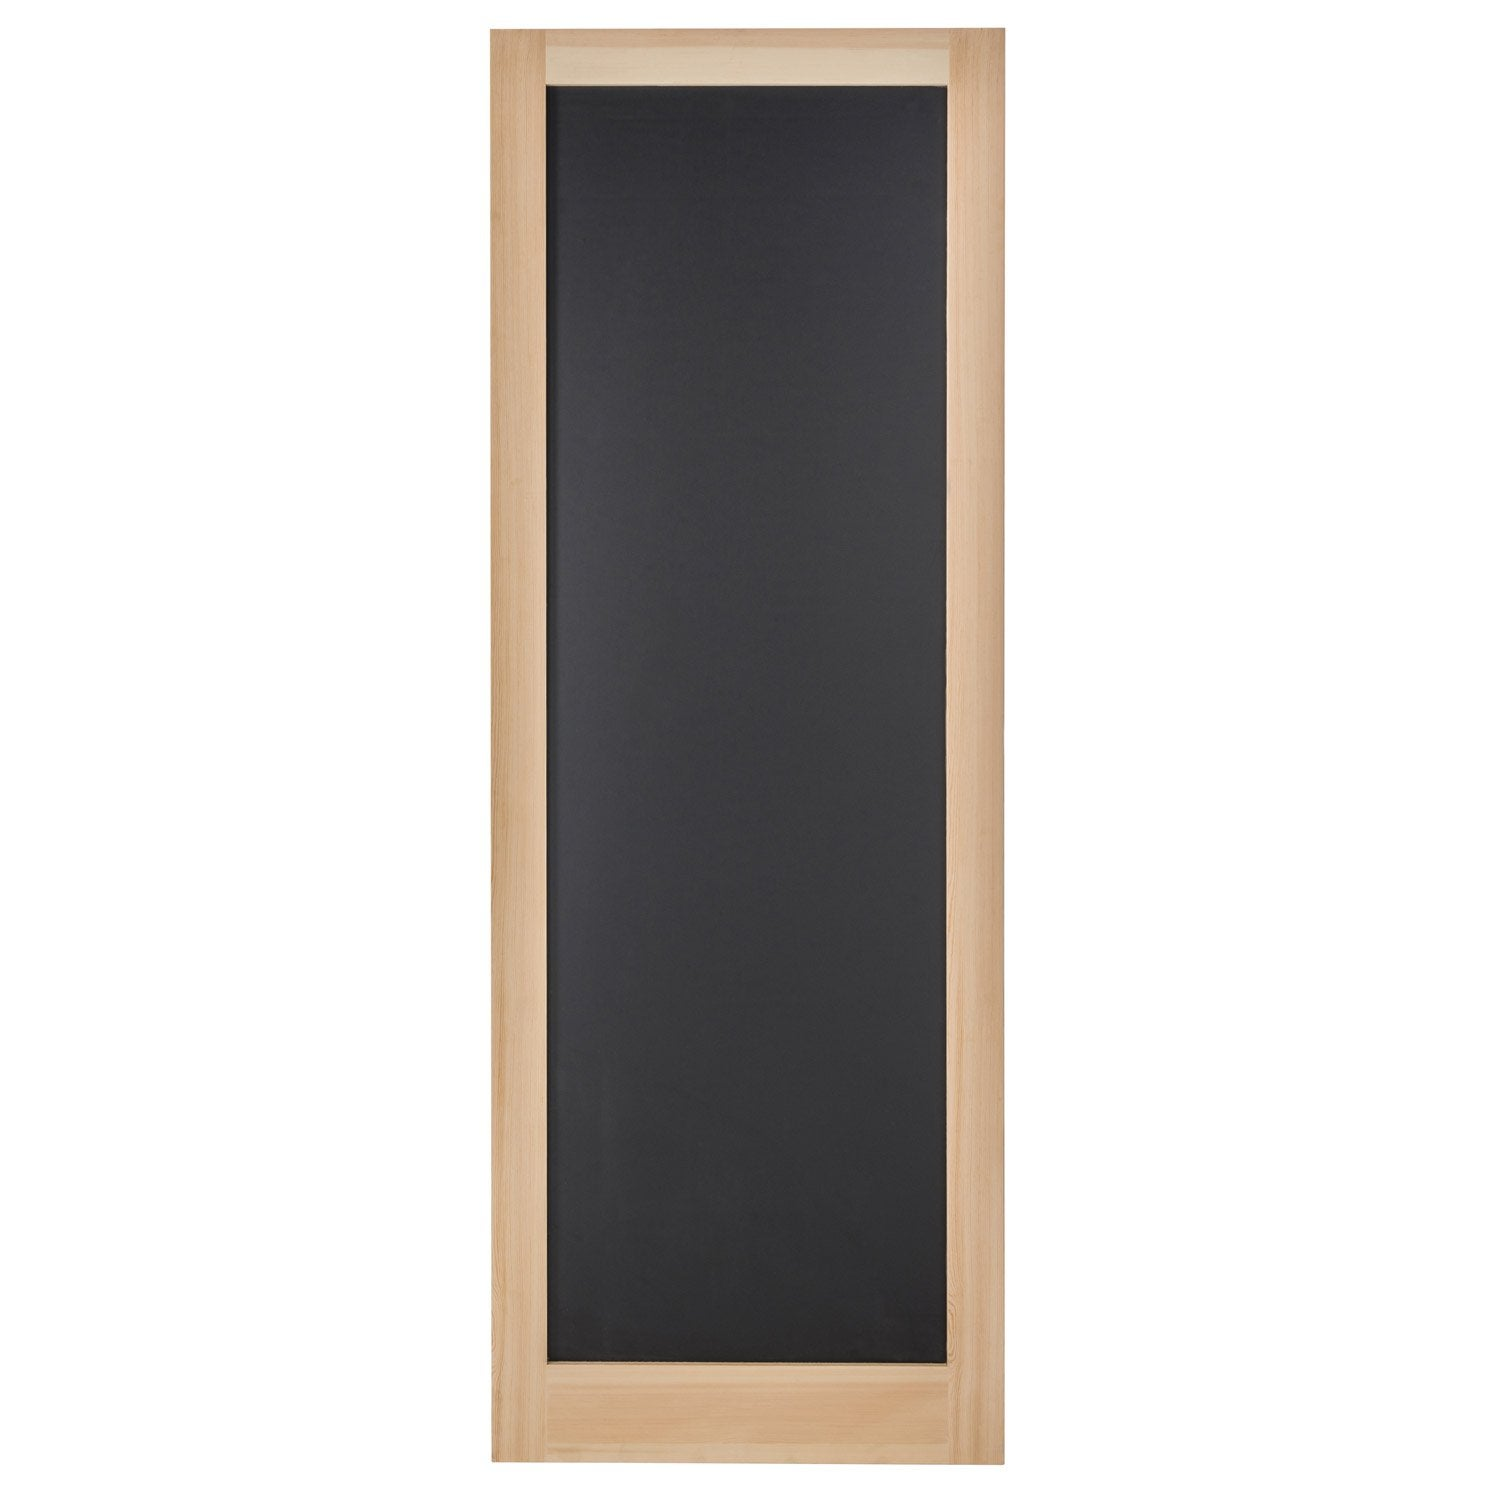 porte coulissante pin plaqu e pin craie artens x cm leroy merlin. Black Bedroom Furniture Sets. Home Design Ideas